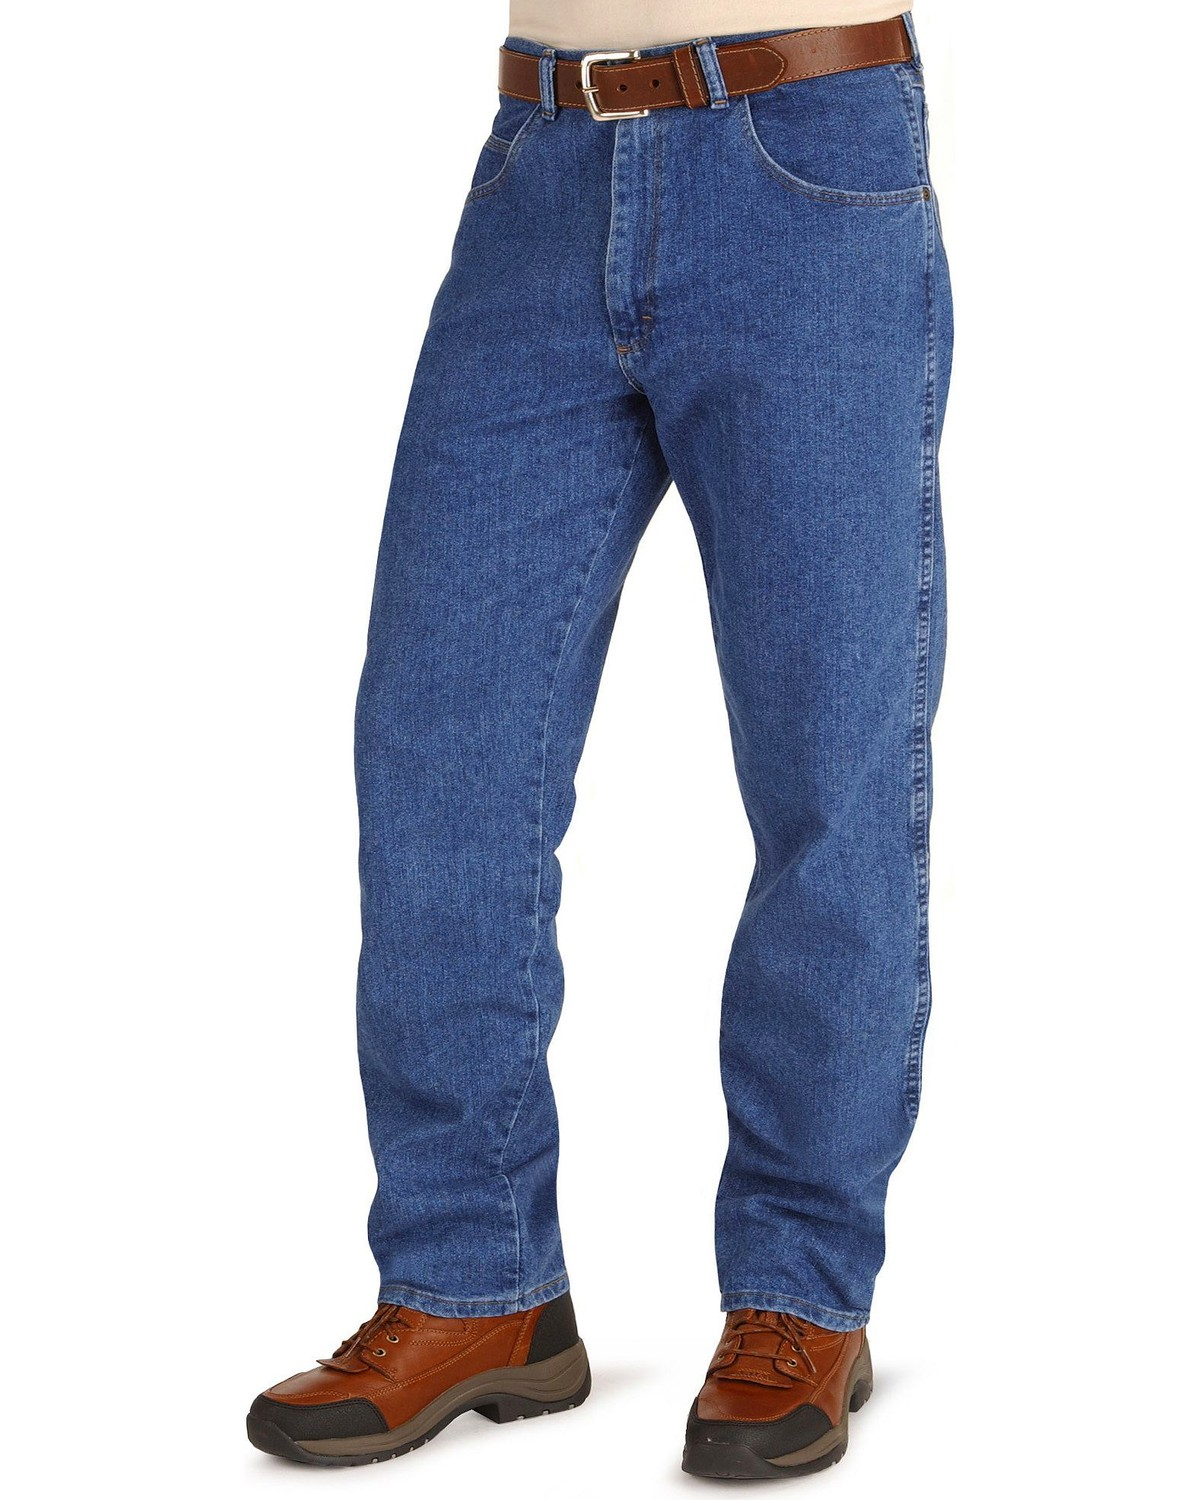 Since , Wrangler has been crafting jeans and western wear apparel in the spirit of American freedom. Their products are made with pride as well as respect for their customer and the environment. Attractive, durable, and fairly priced, Wrangler is well-made western wear .